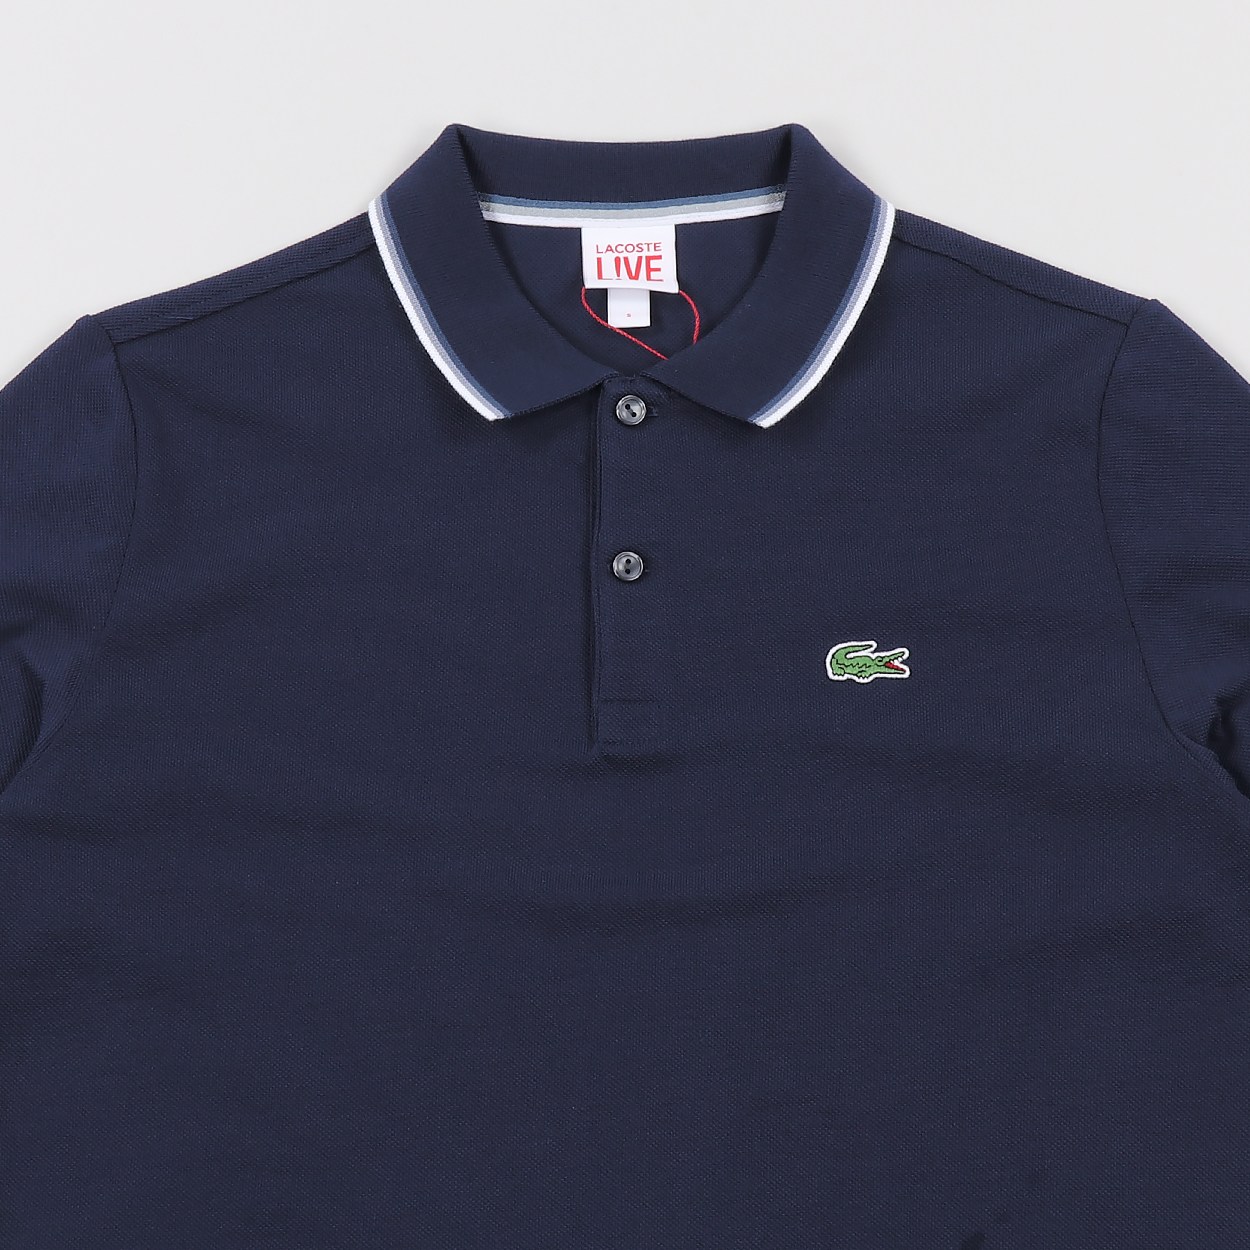 Lacoste Live Mens Short Sleeve Piped Neck Polo Shirt Blue